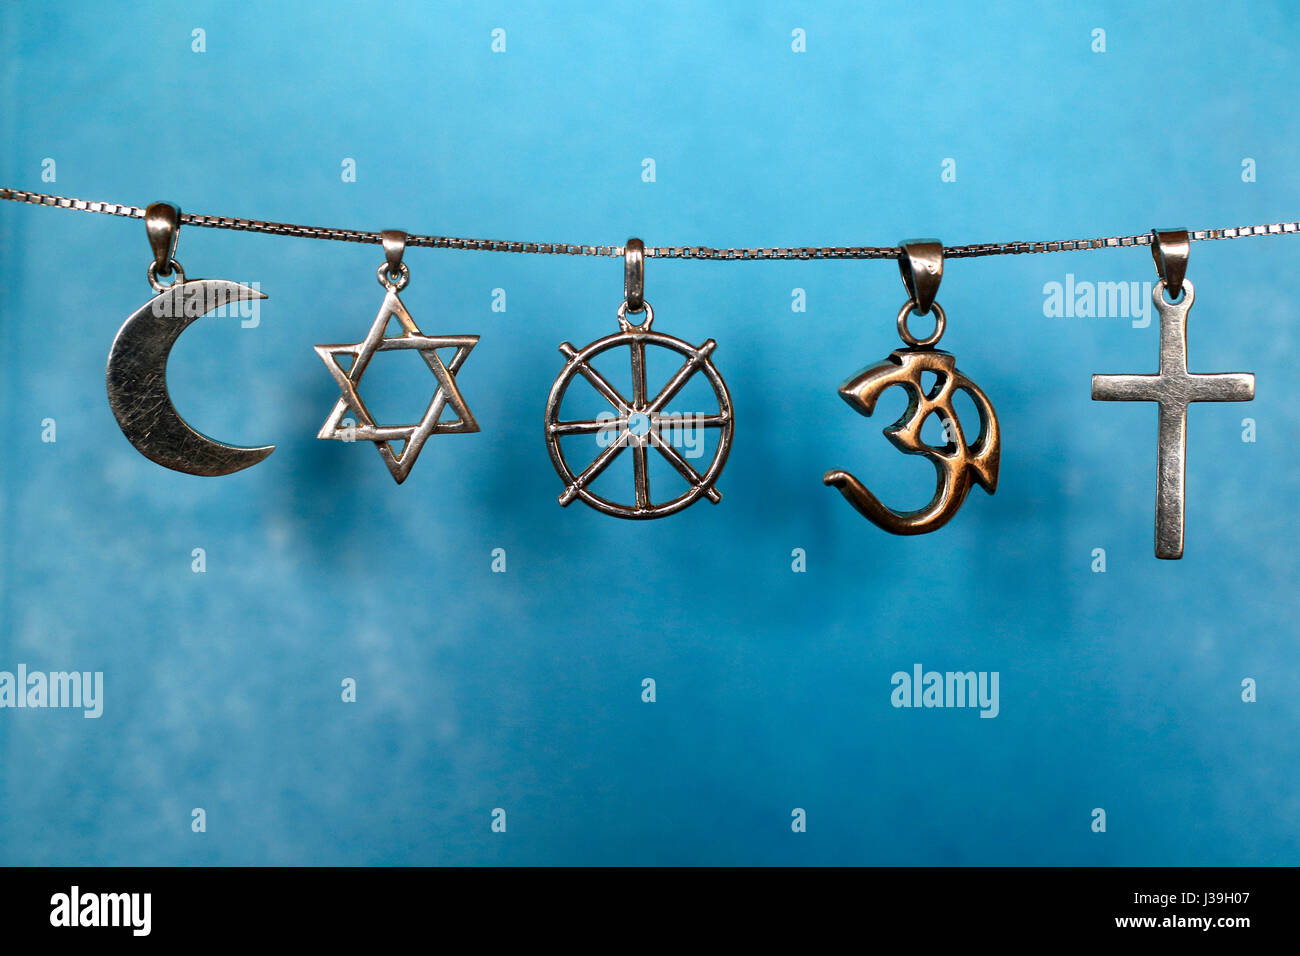 Symbols Islam Stock Photos Symbols Islam Stock Images Alamy